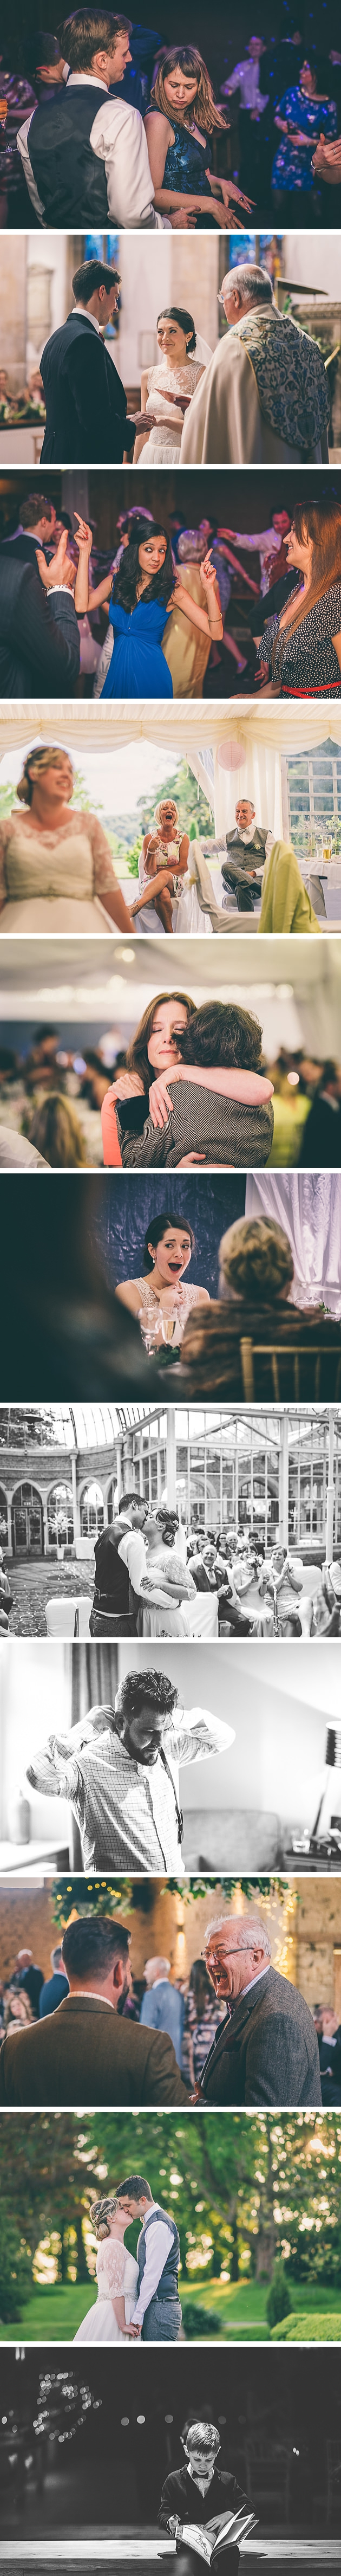 Guests laughing at a wedding during the drinks reception